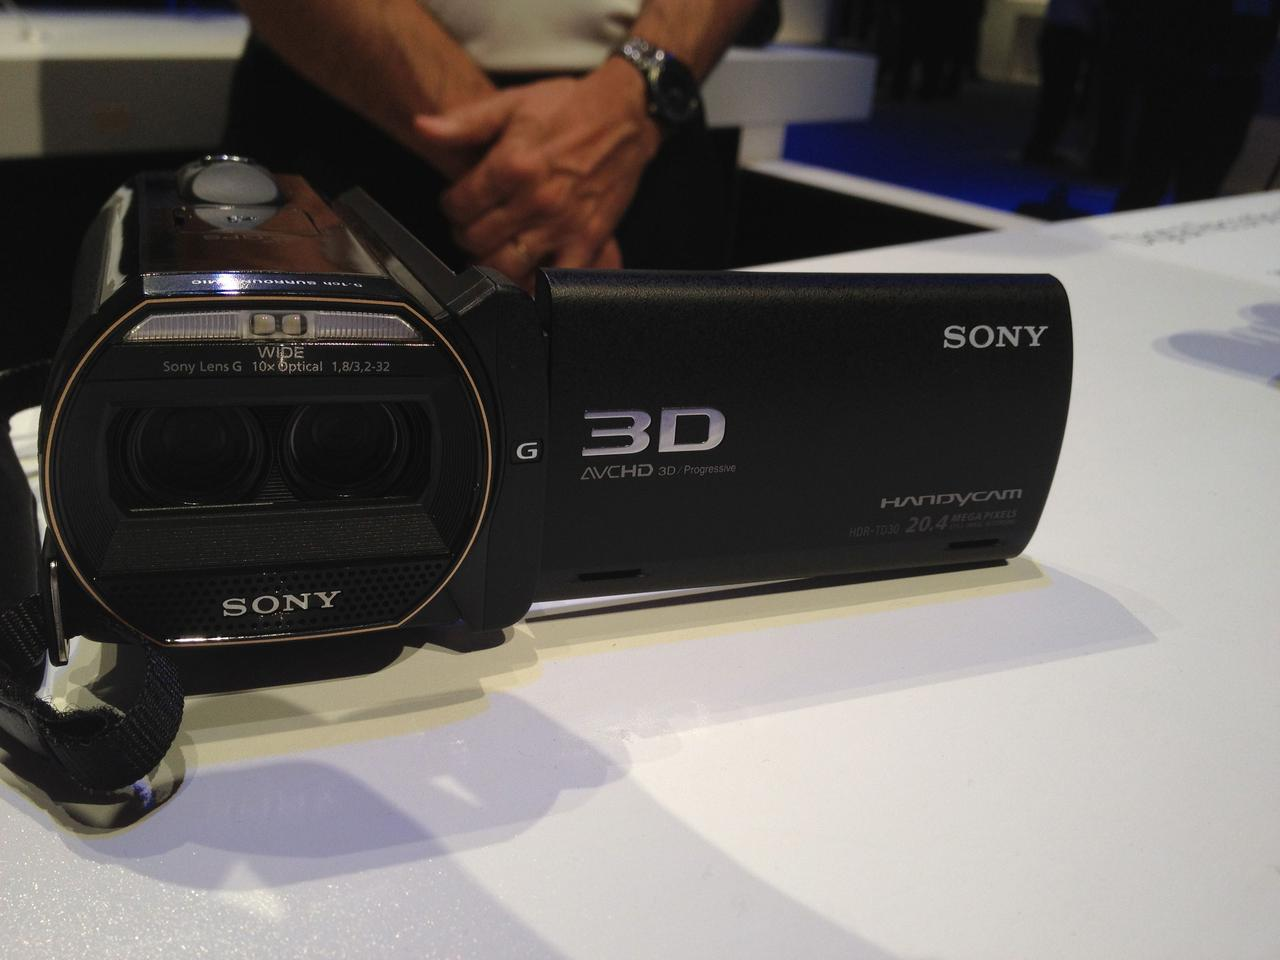 Sony's new HDR-TD30V camcorder on the CES 2013 show floor